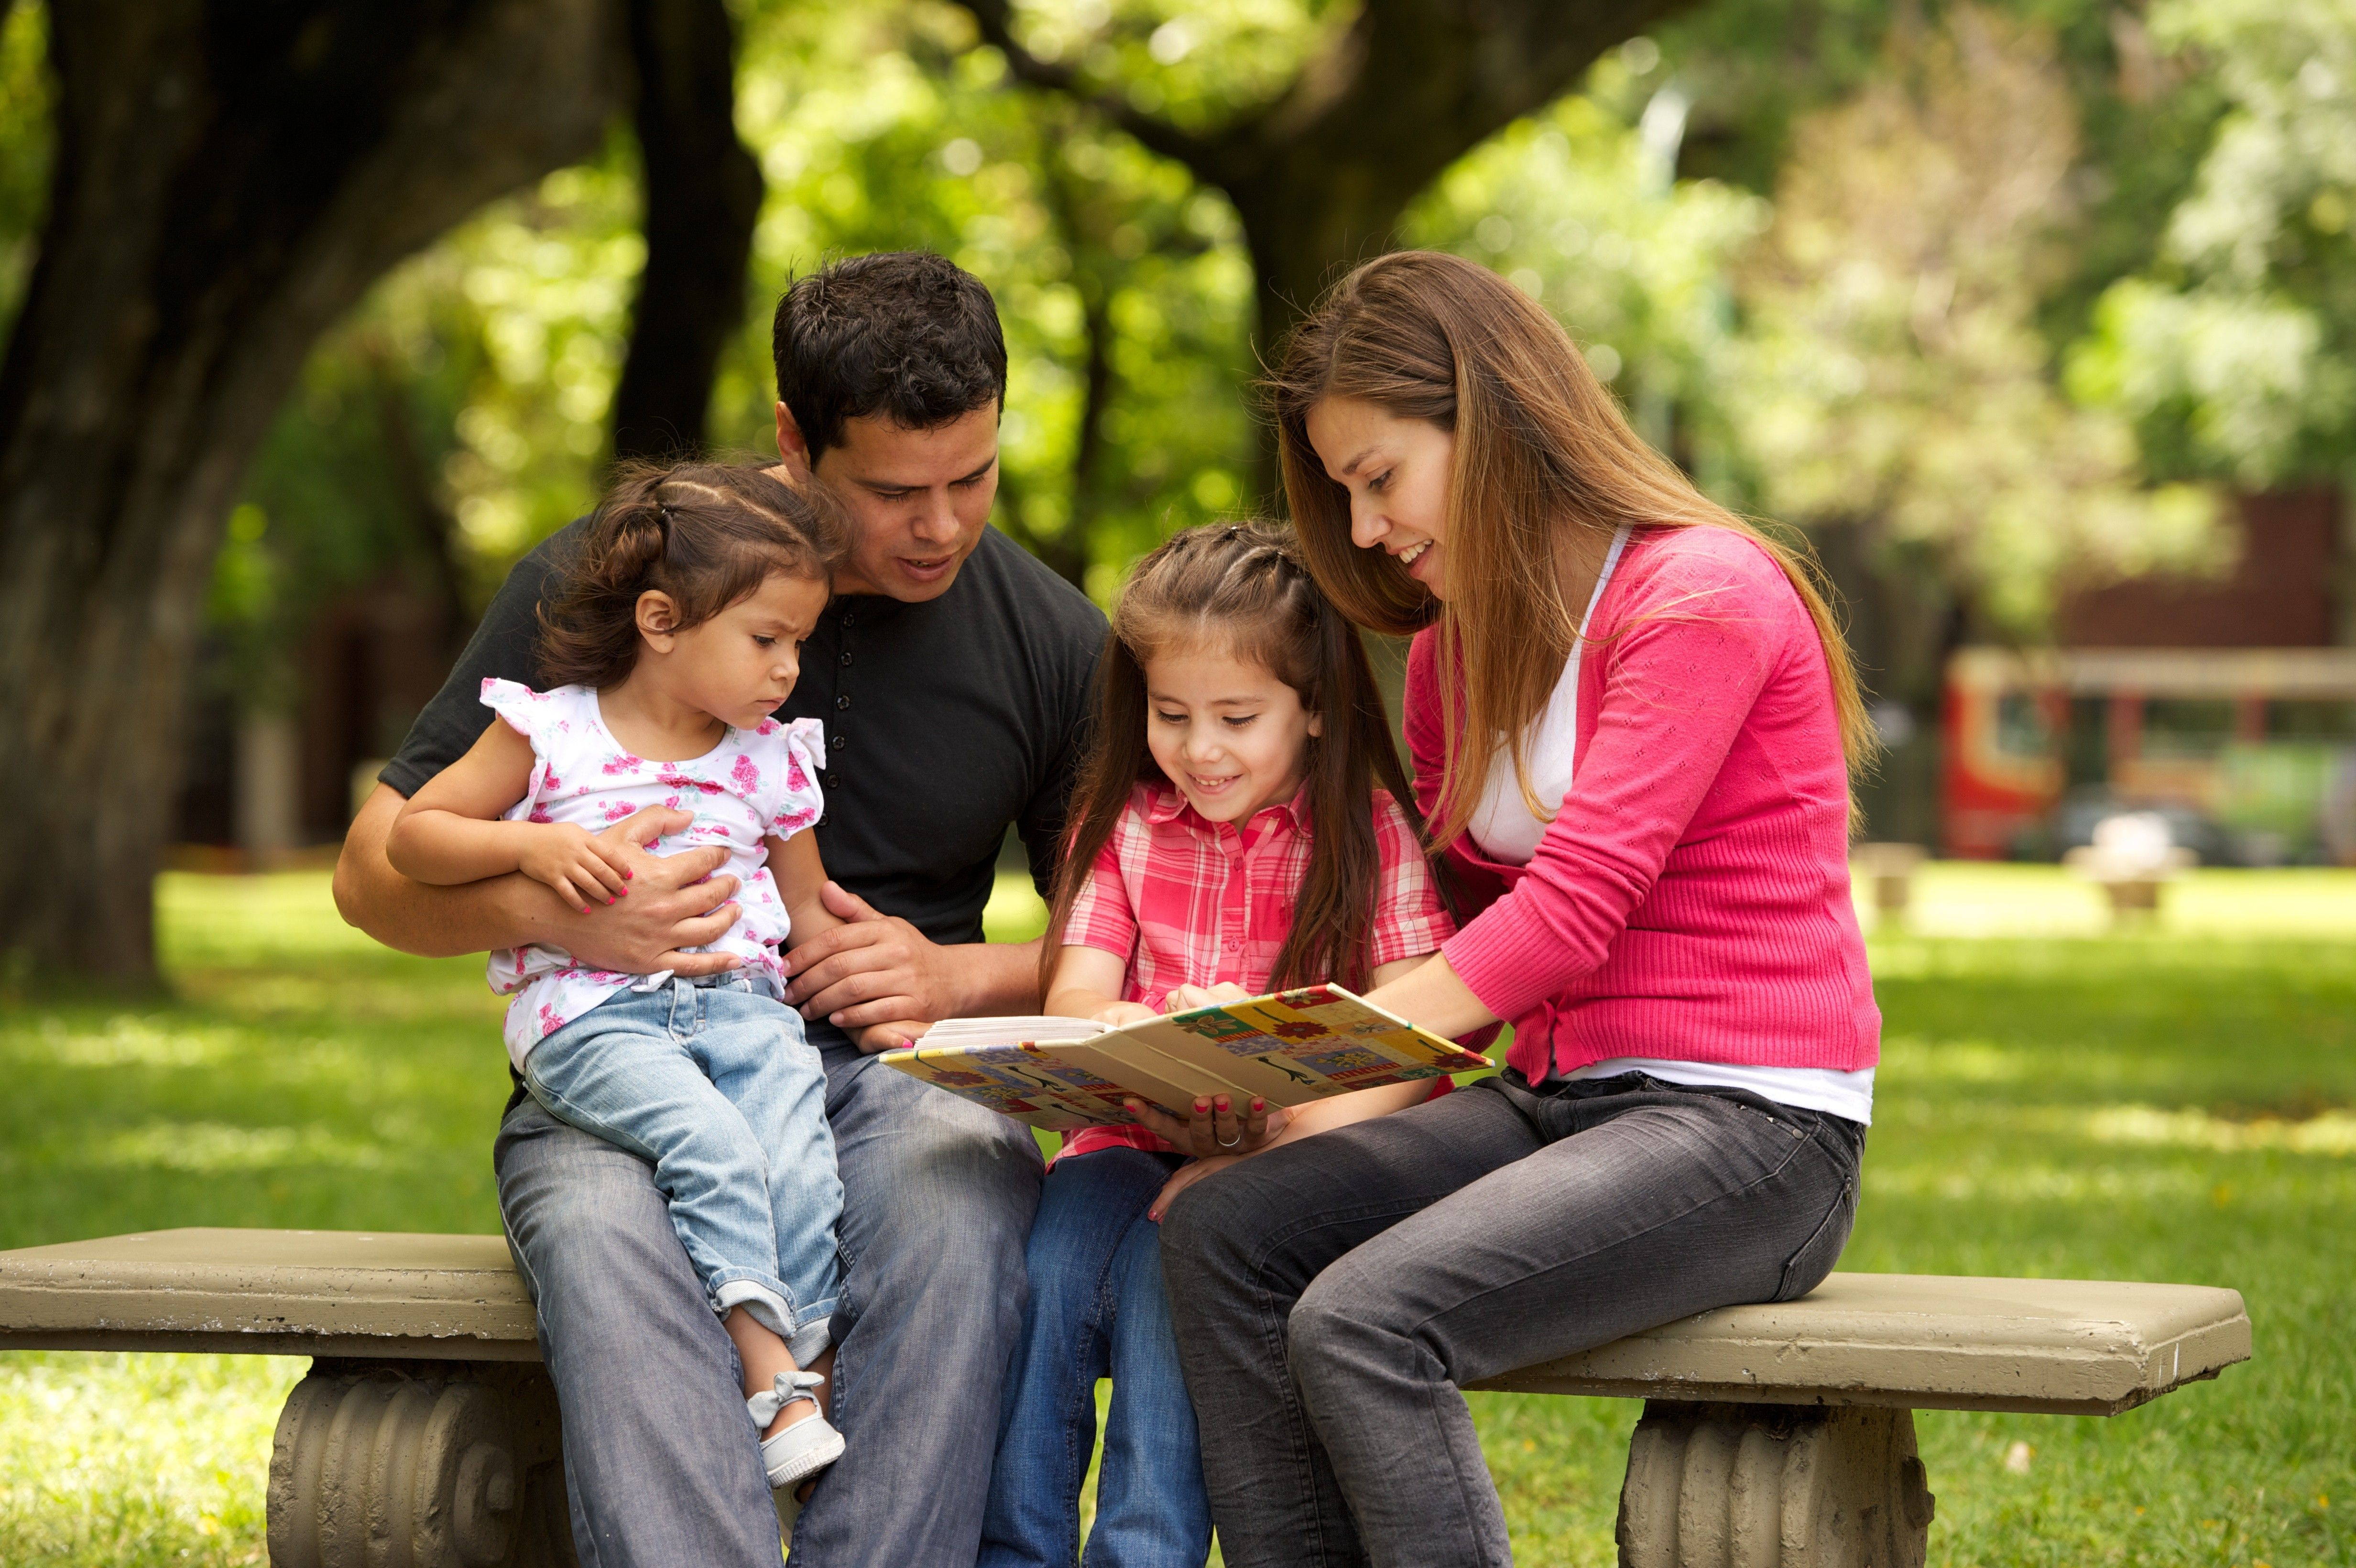 A family reading together in the park.